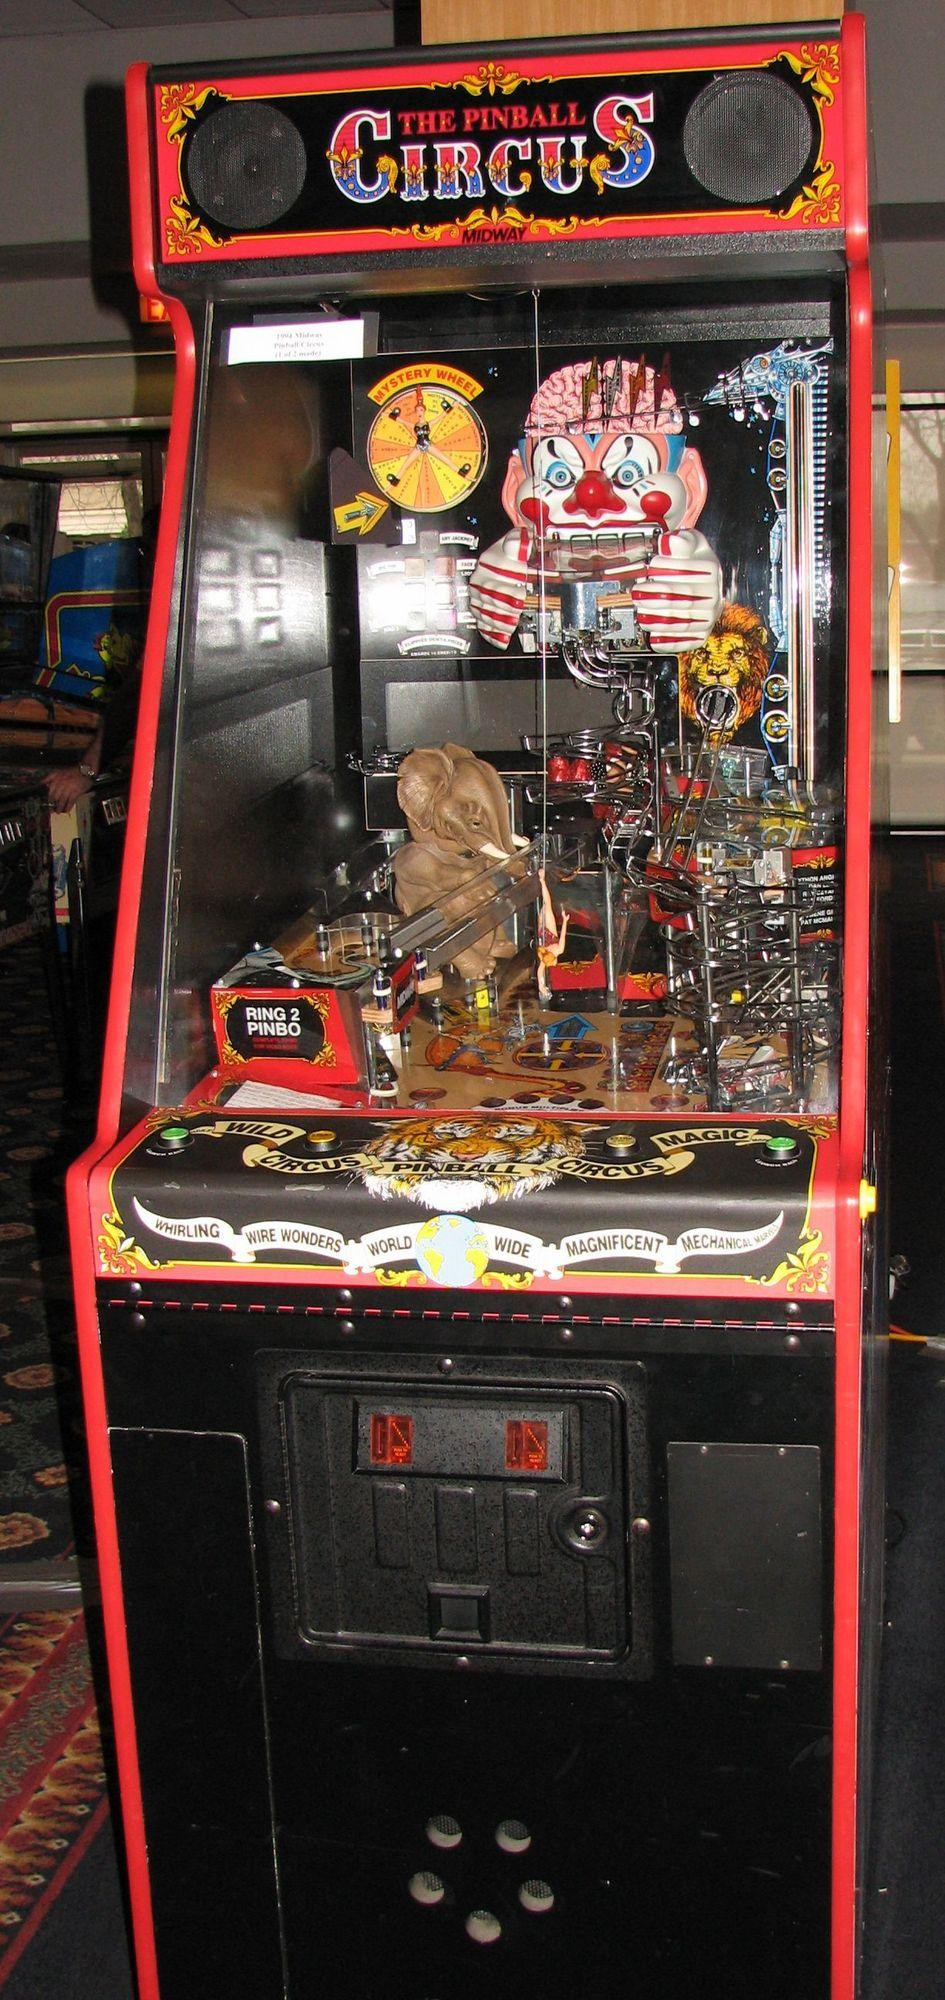 Midway Pinball Circus 1994 Williams Bally coin operated